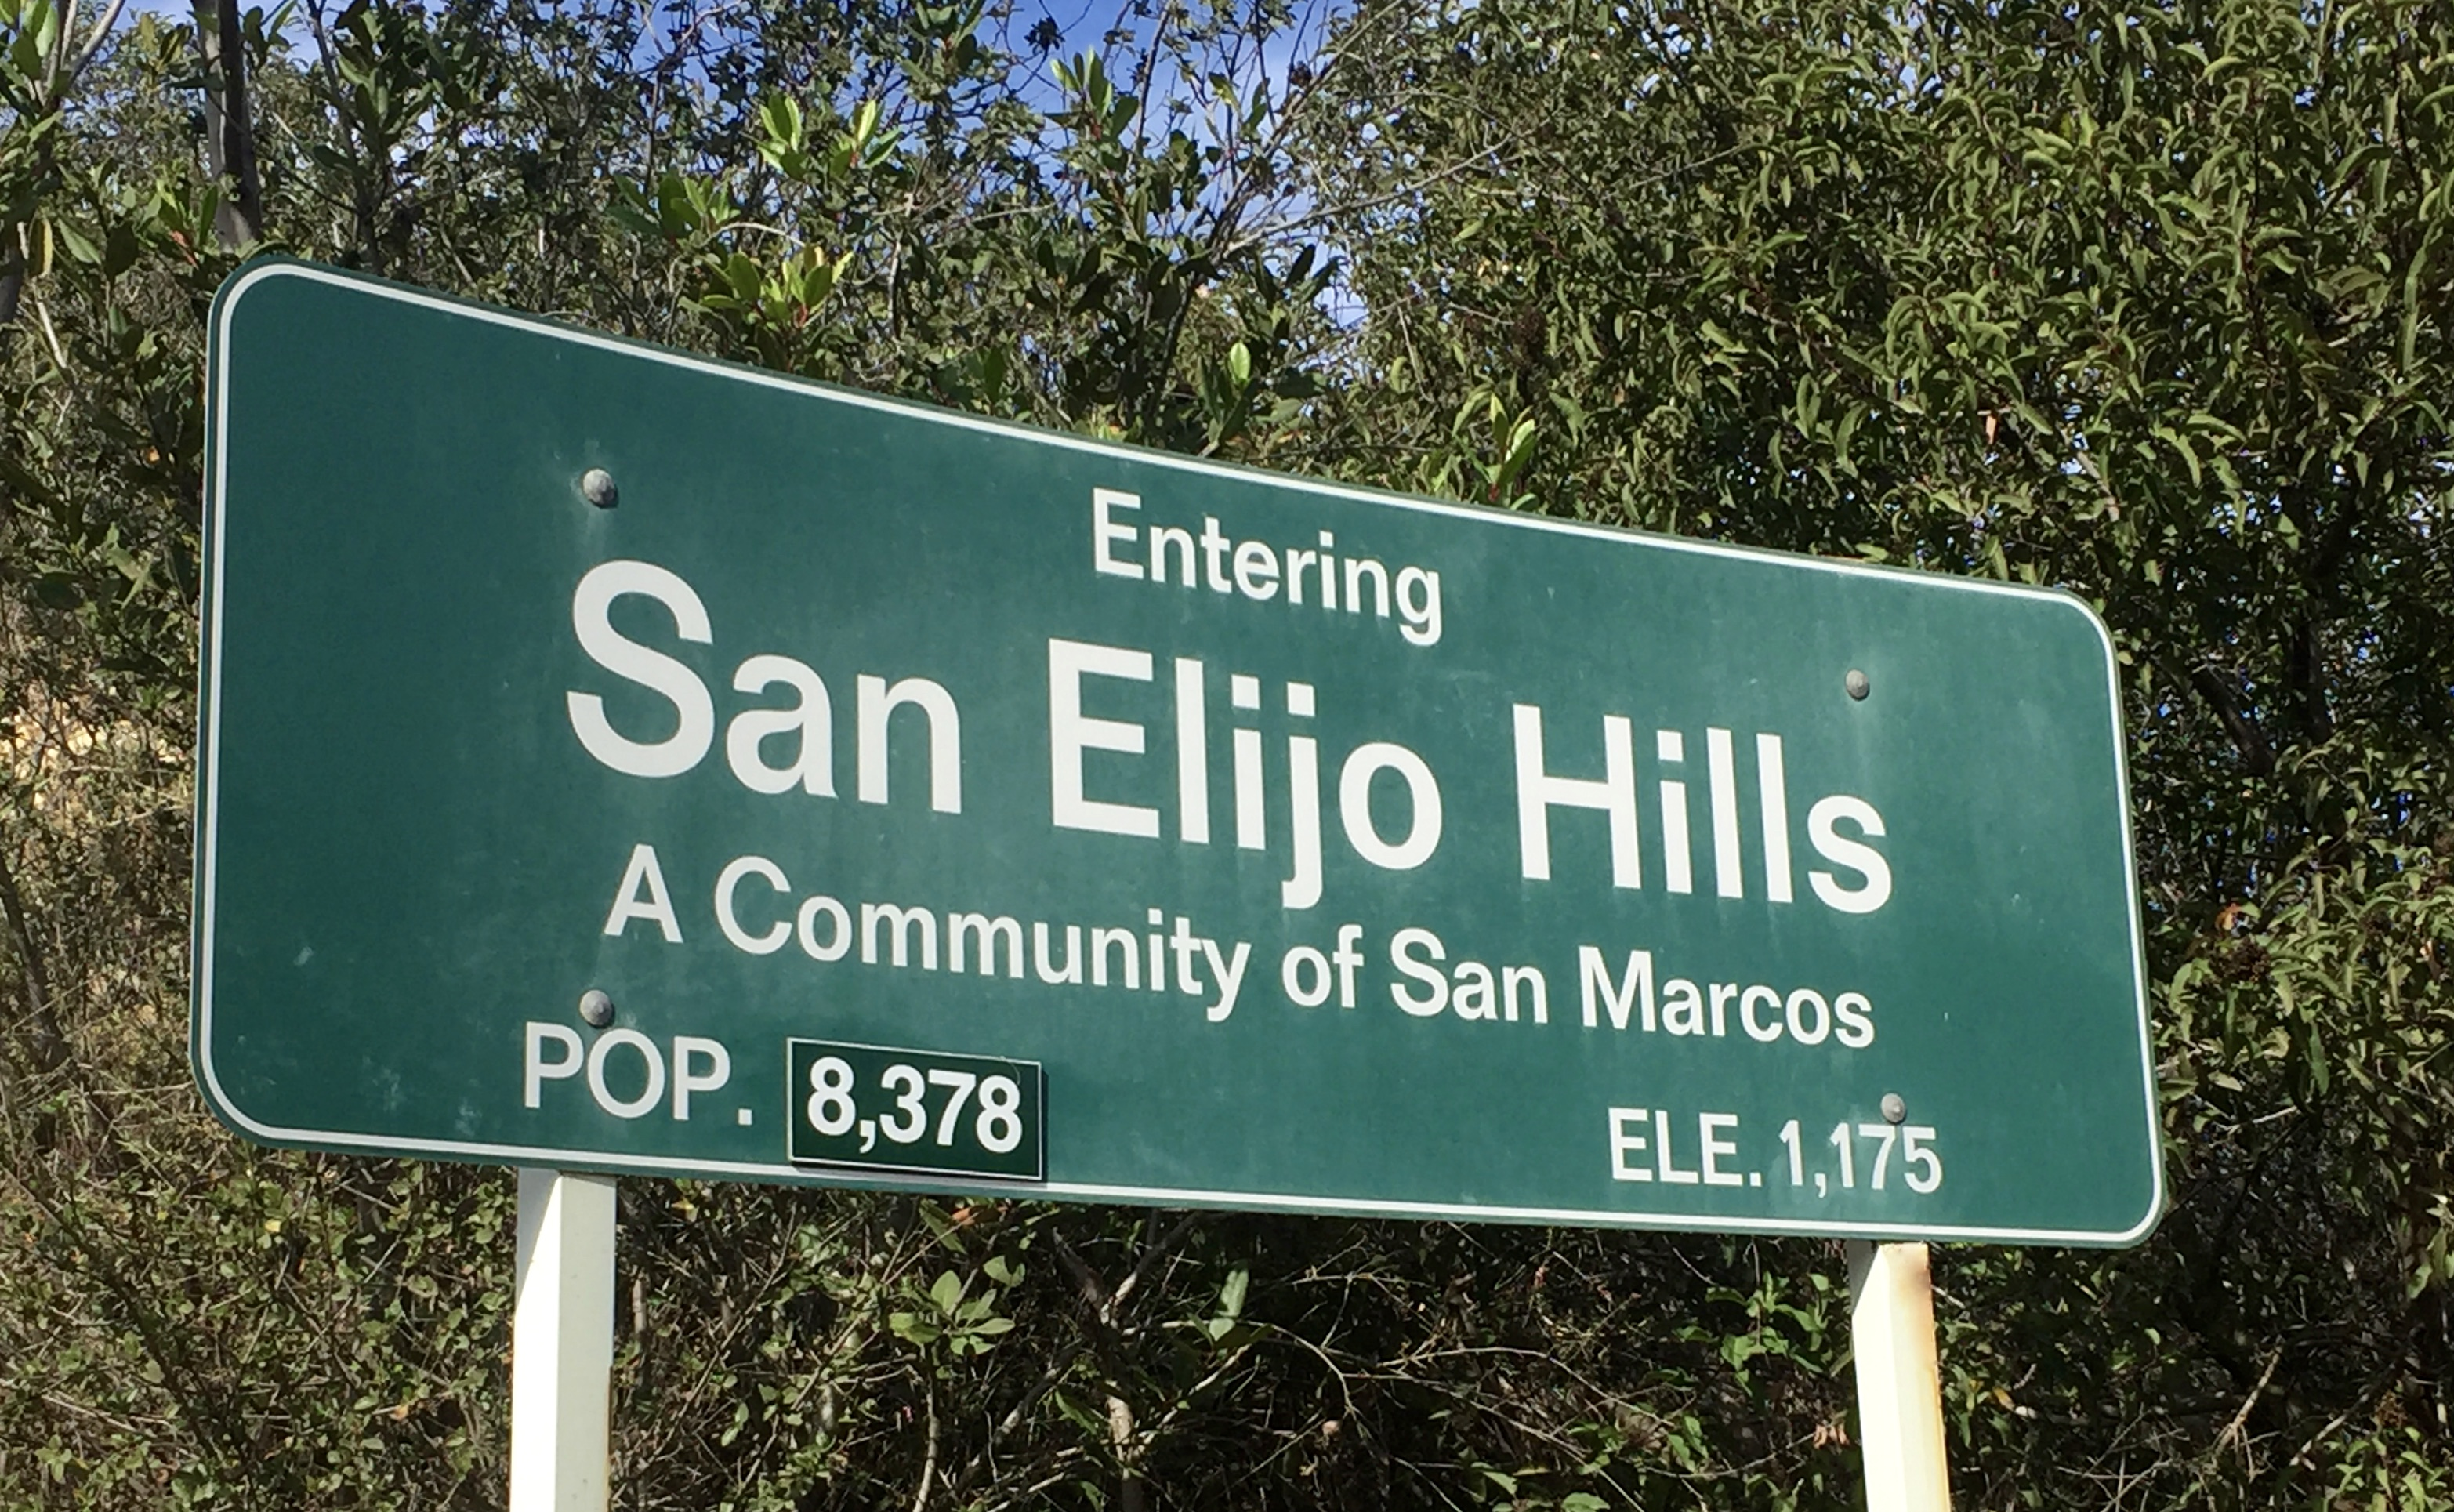 Click for NEW Construction in San Elijo Hills in San Marcos CA